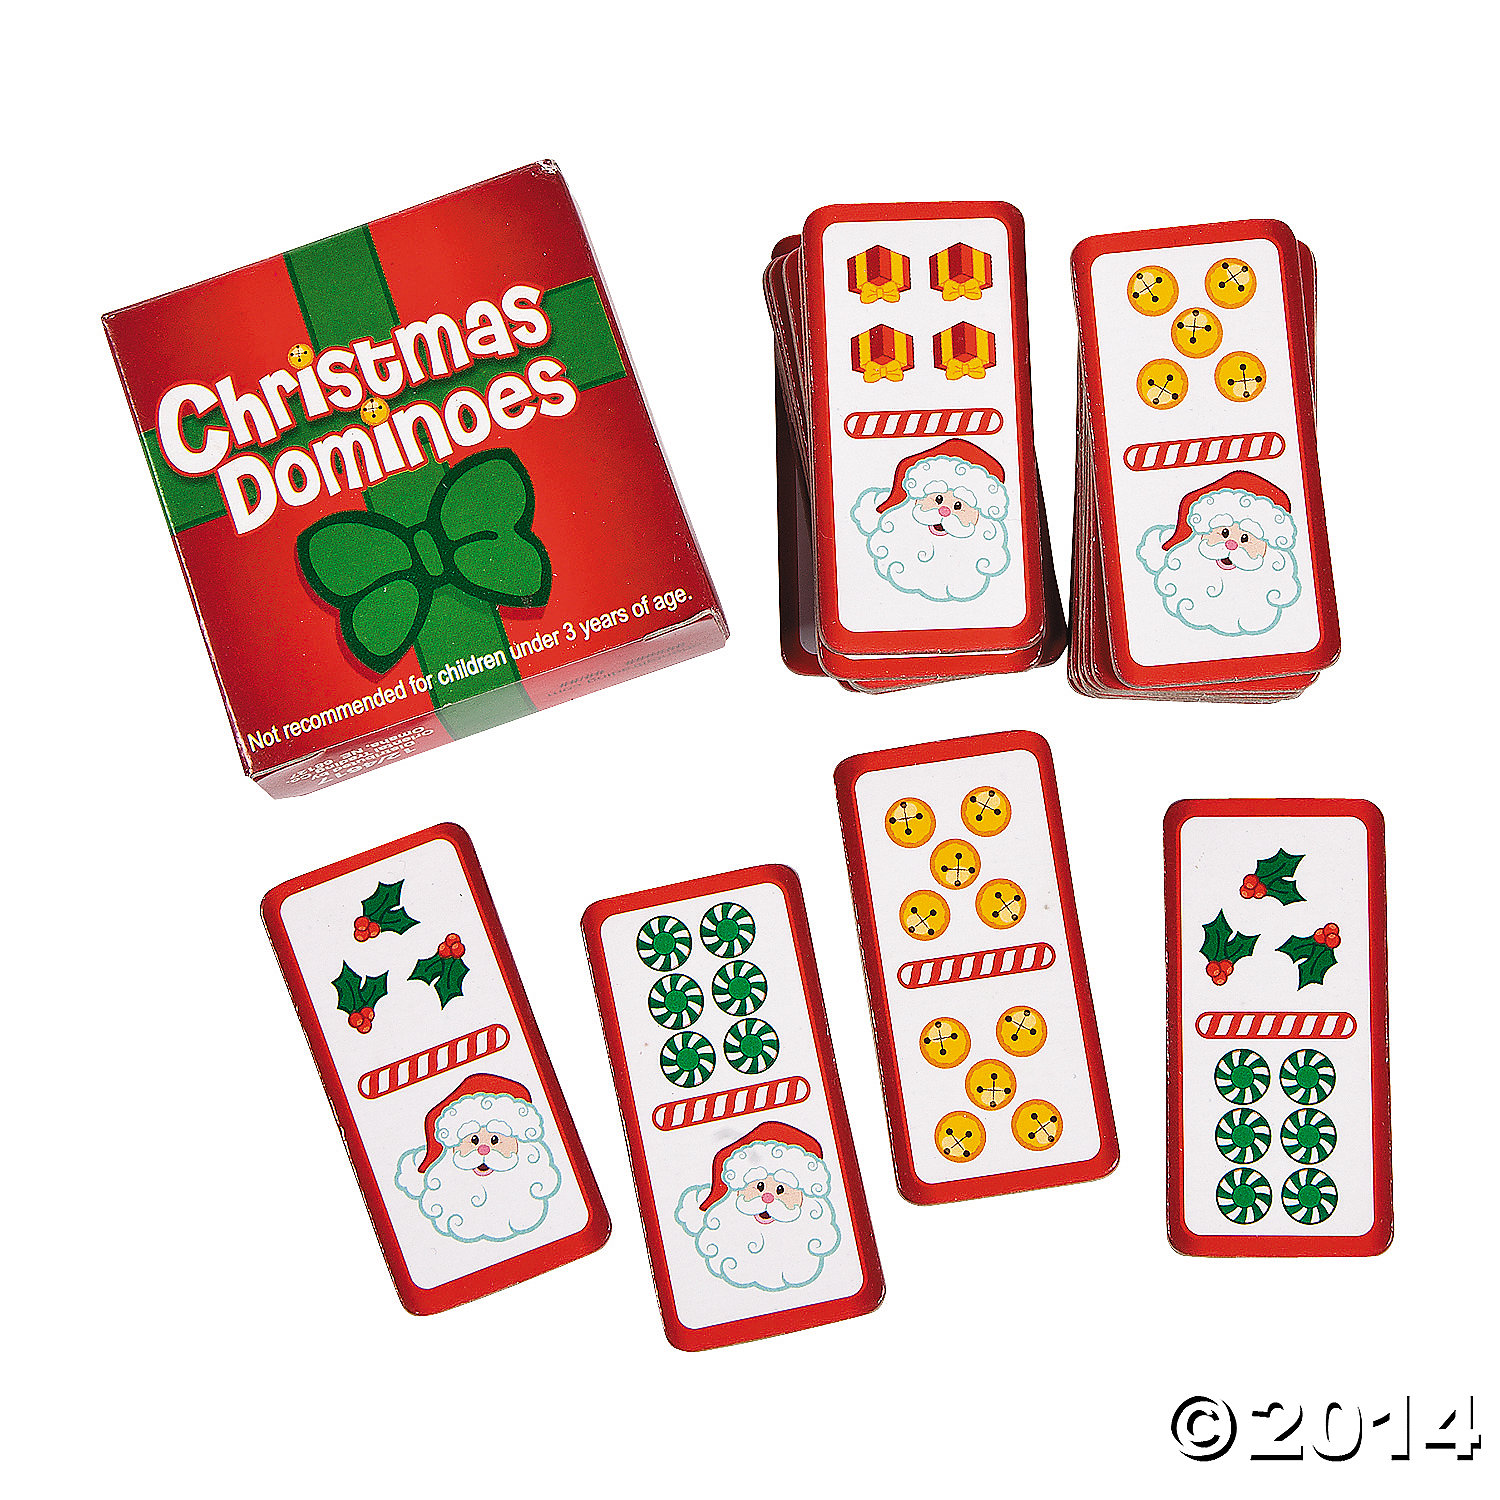 Cardboard Christmas Domino Games